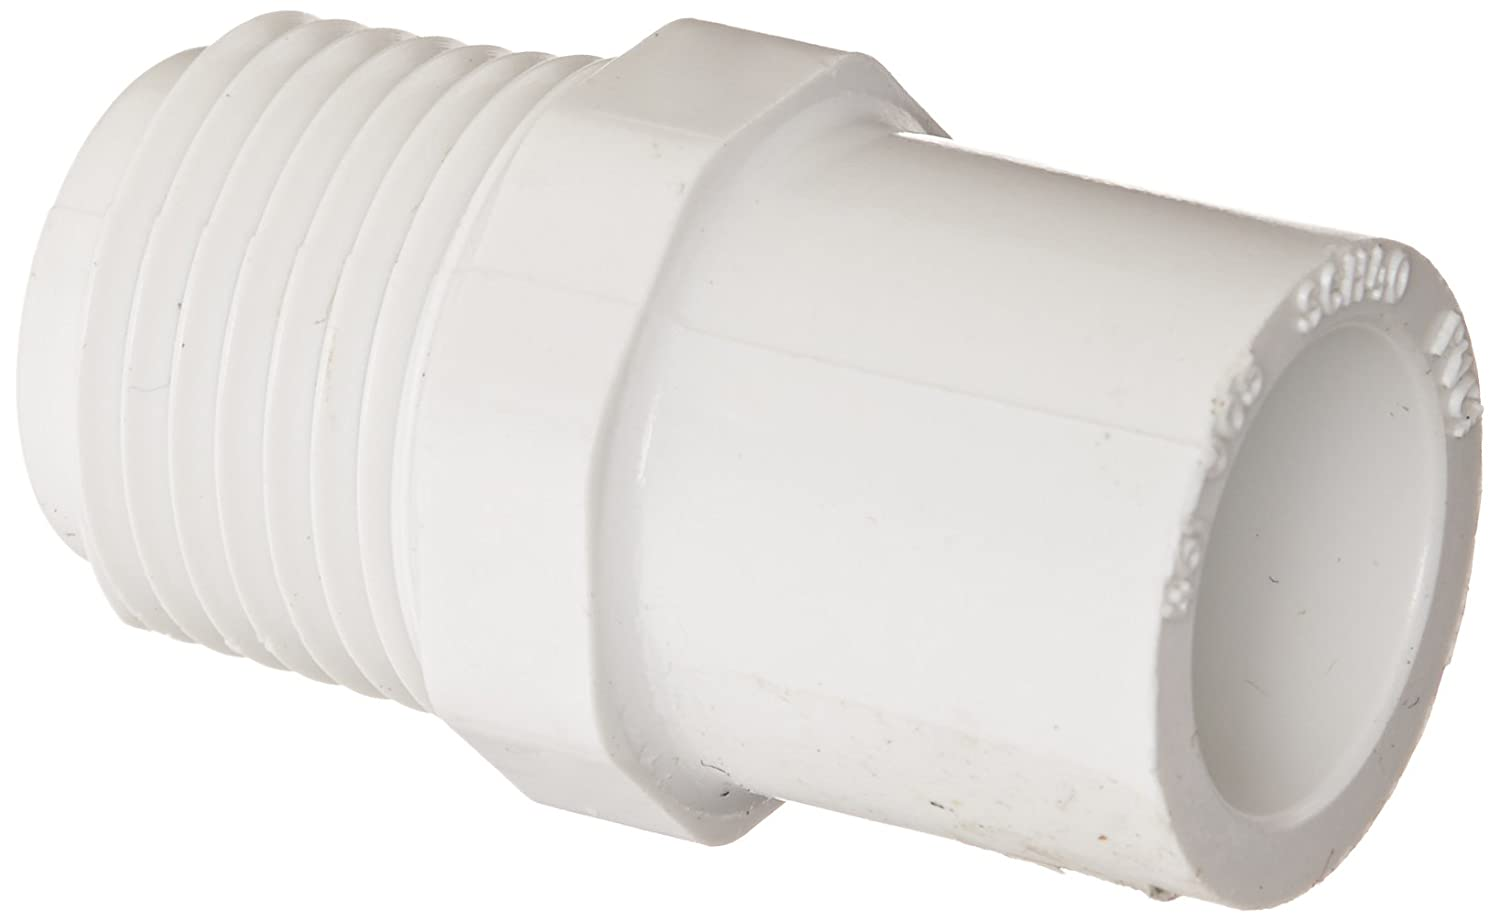 Spears 461 Series PVC Pipe Fitting, Adapter, Schedule 40, 1 NPT Male x 1 Spigot Spears Manufacturing